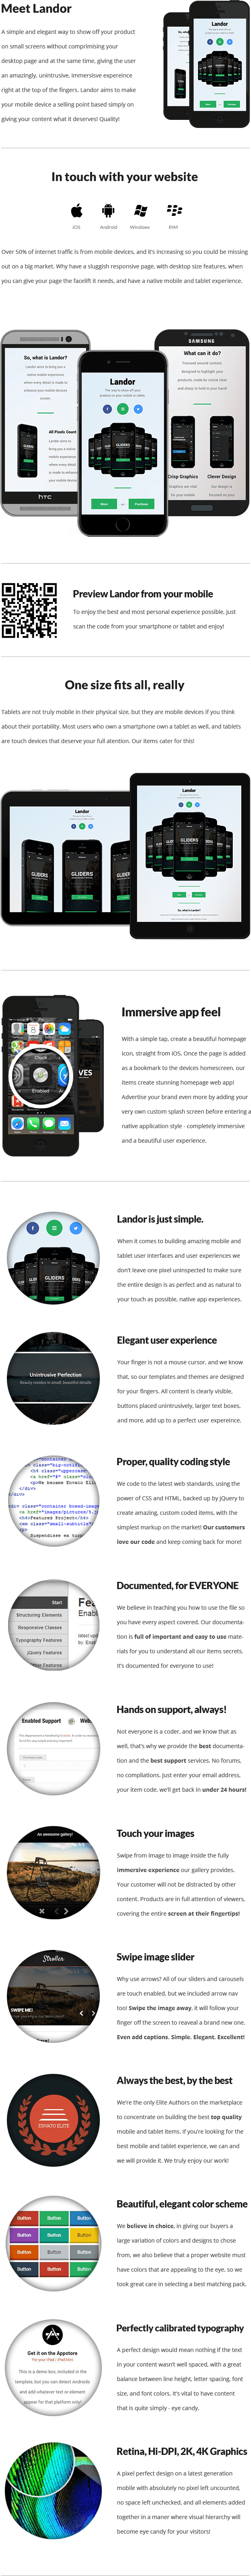 Landor | Mobile & Tablet Responsive Template